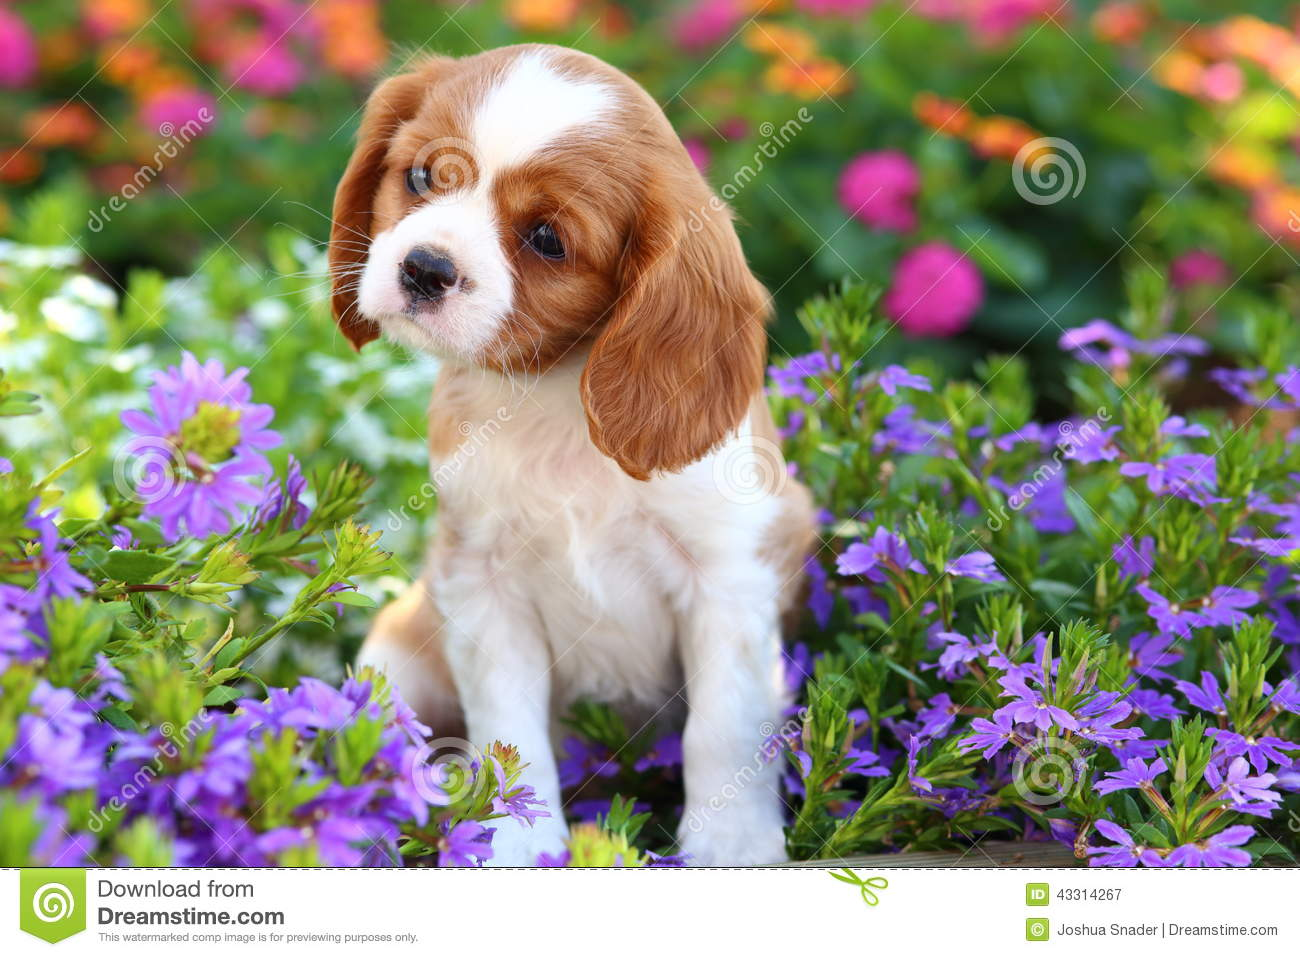 Cute Cavalier King Charles Spaniel Puppy Stock Image Image Of Spotted Summer 43314267